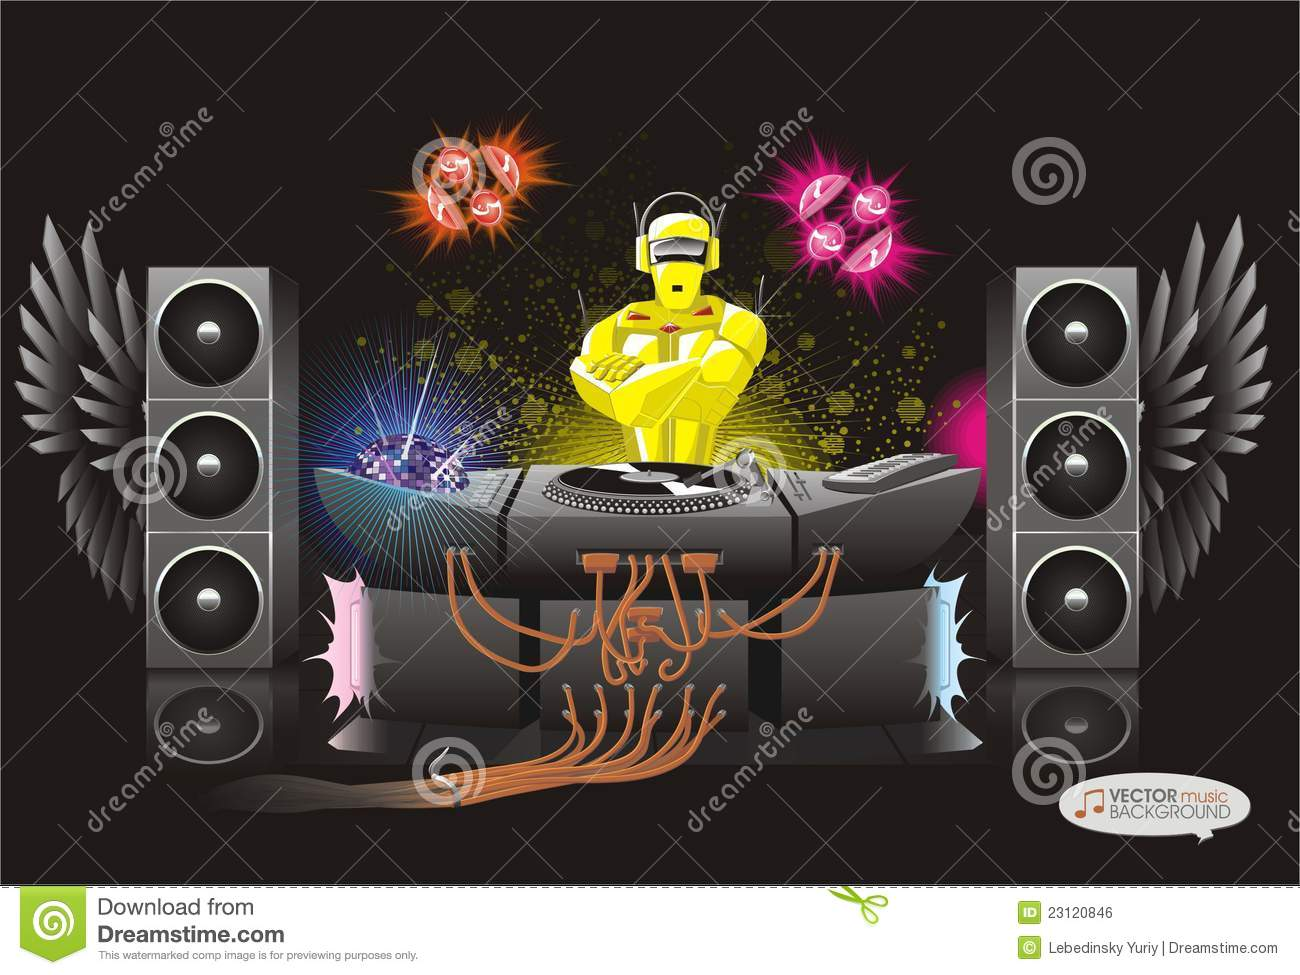 Image Result For Royalty Free Club Music